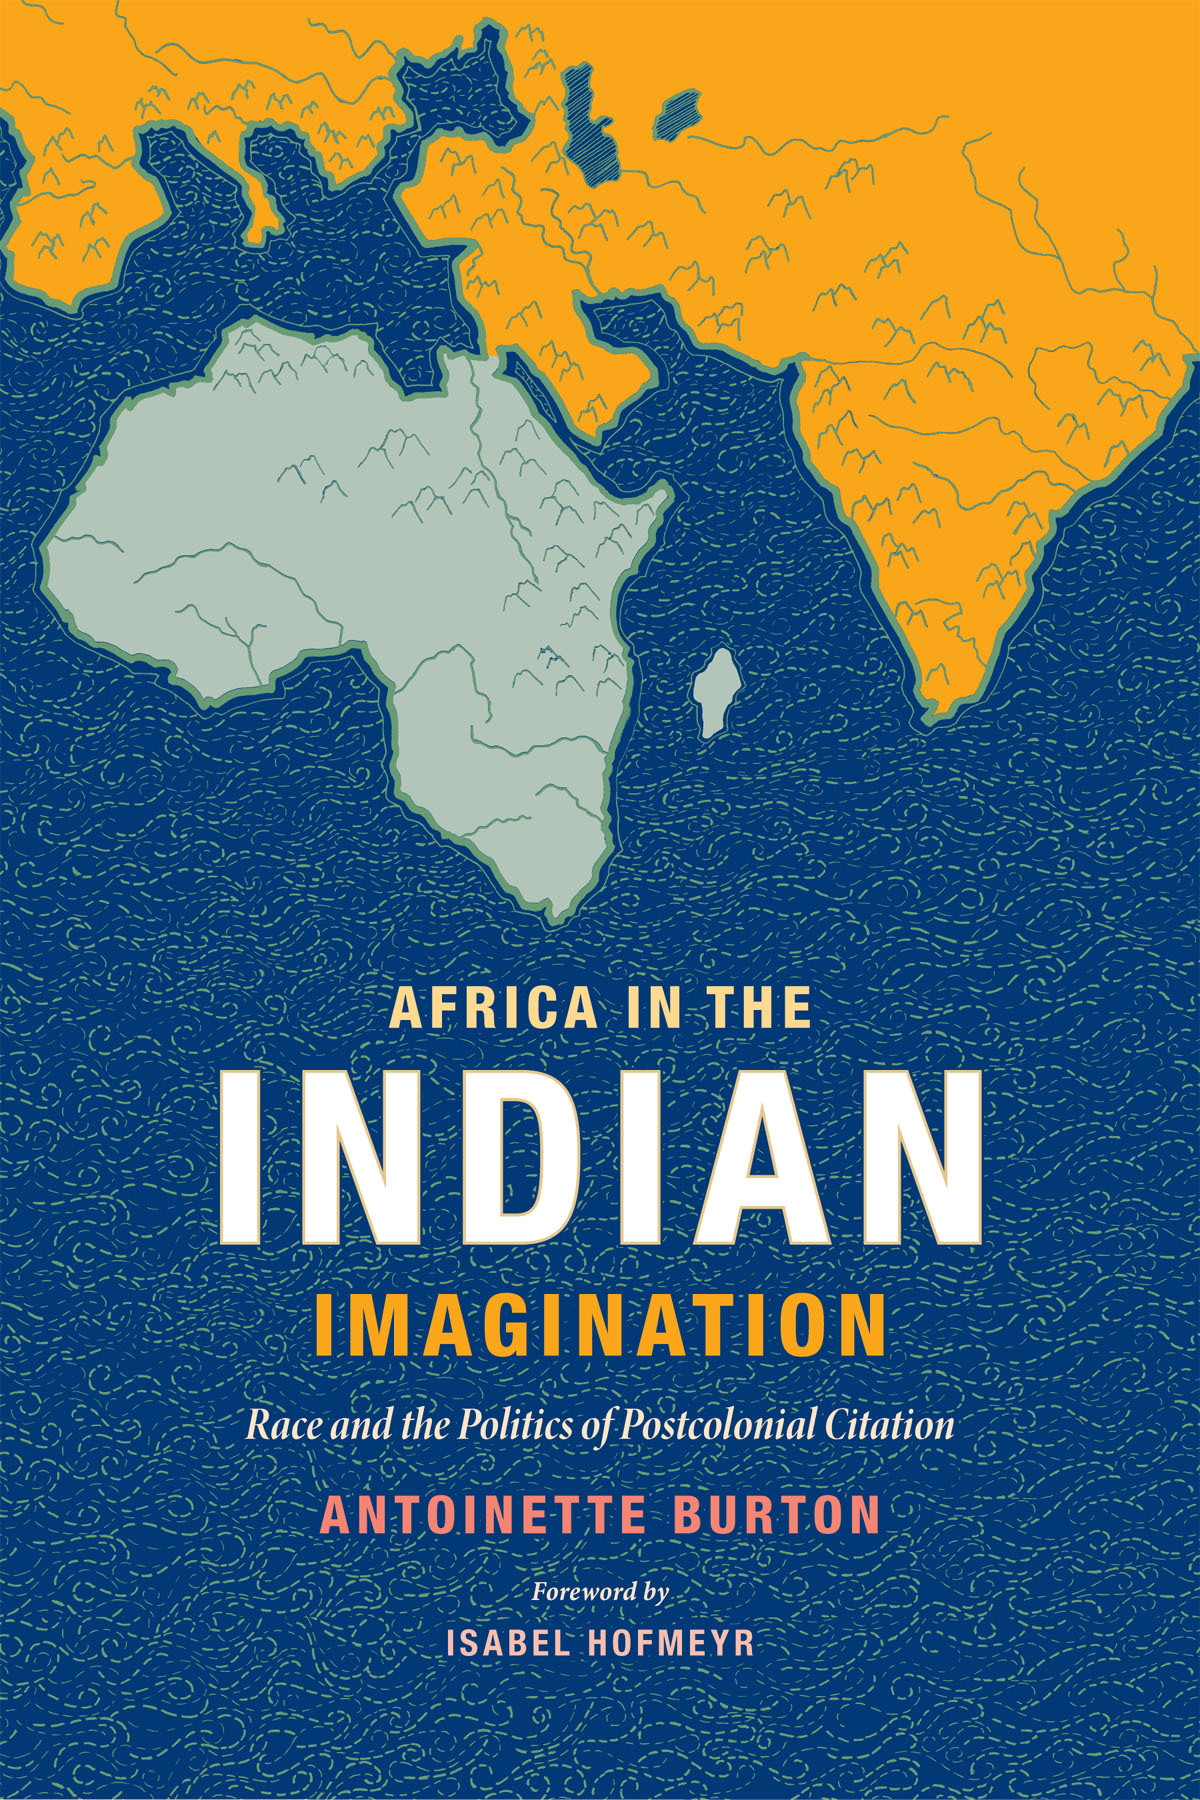 Africa in the Indian Imagination Race and the Politics of Postcolonial Citation